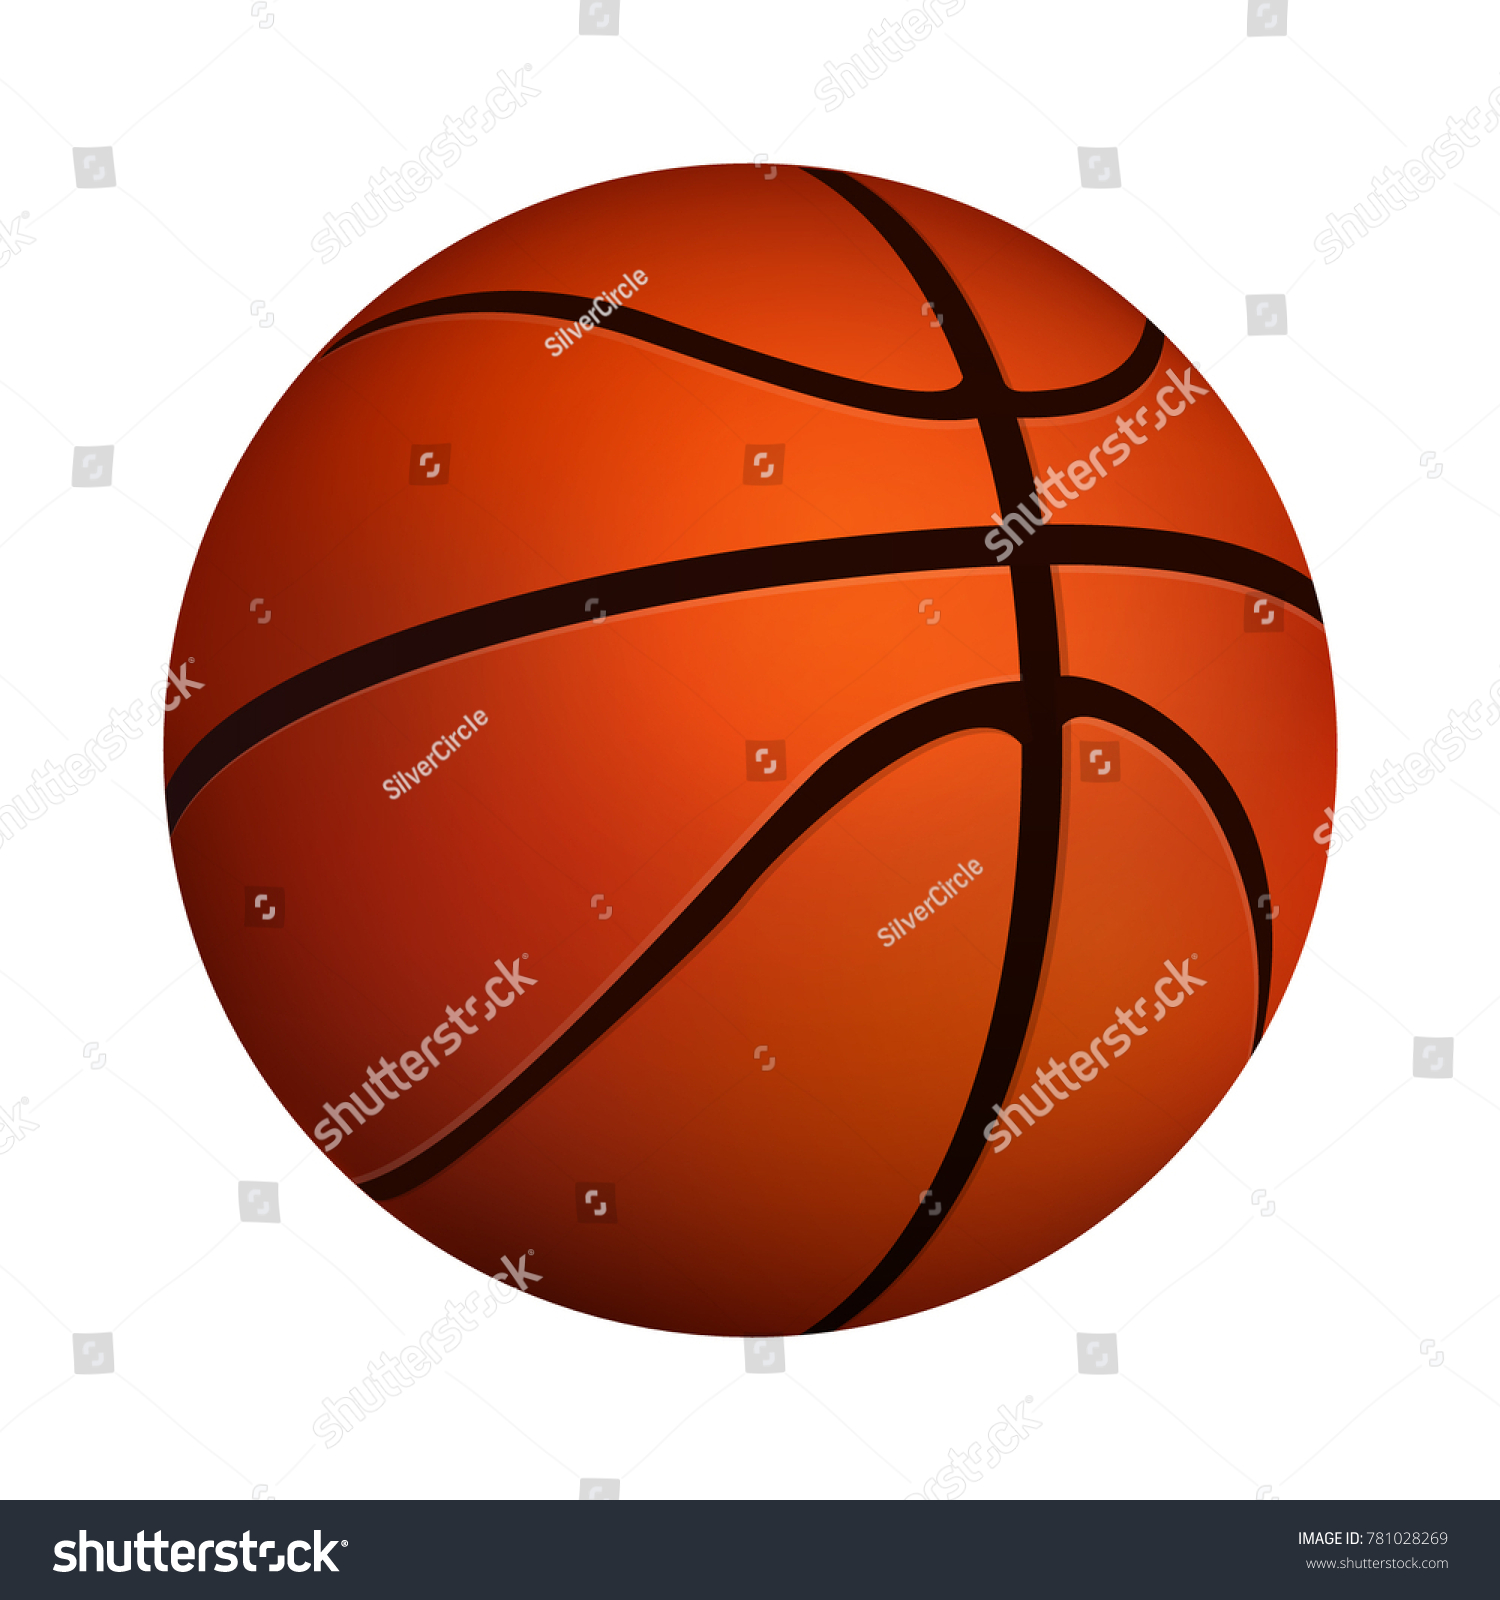 Basketball Ball Icon Isolated On White Background. Vector Image Eps 10 For Flyer  Design Element